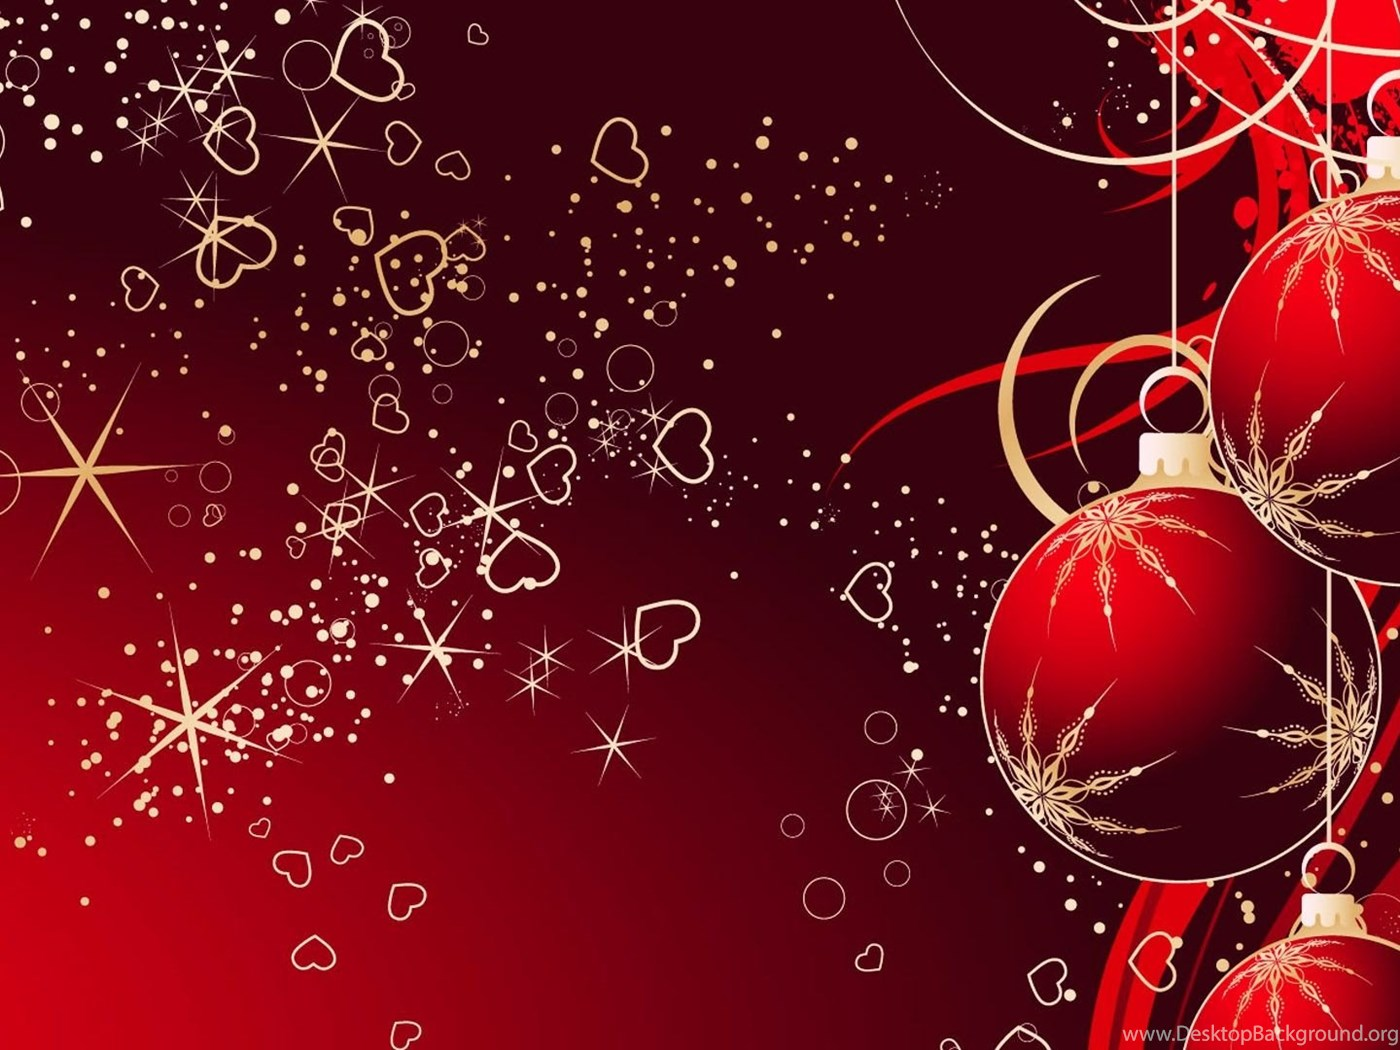 Cute Christmas Backgrounds.Cute Christmas Backgrounds Wallpaper Desktop Background